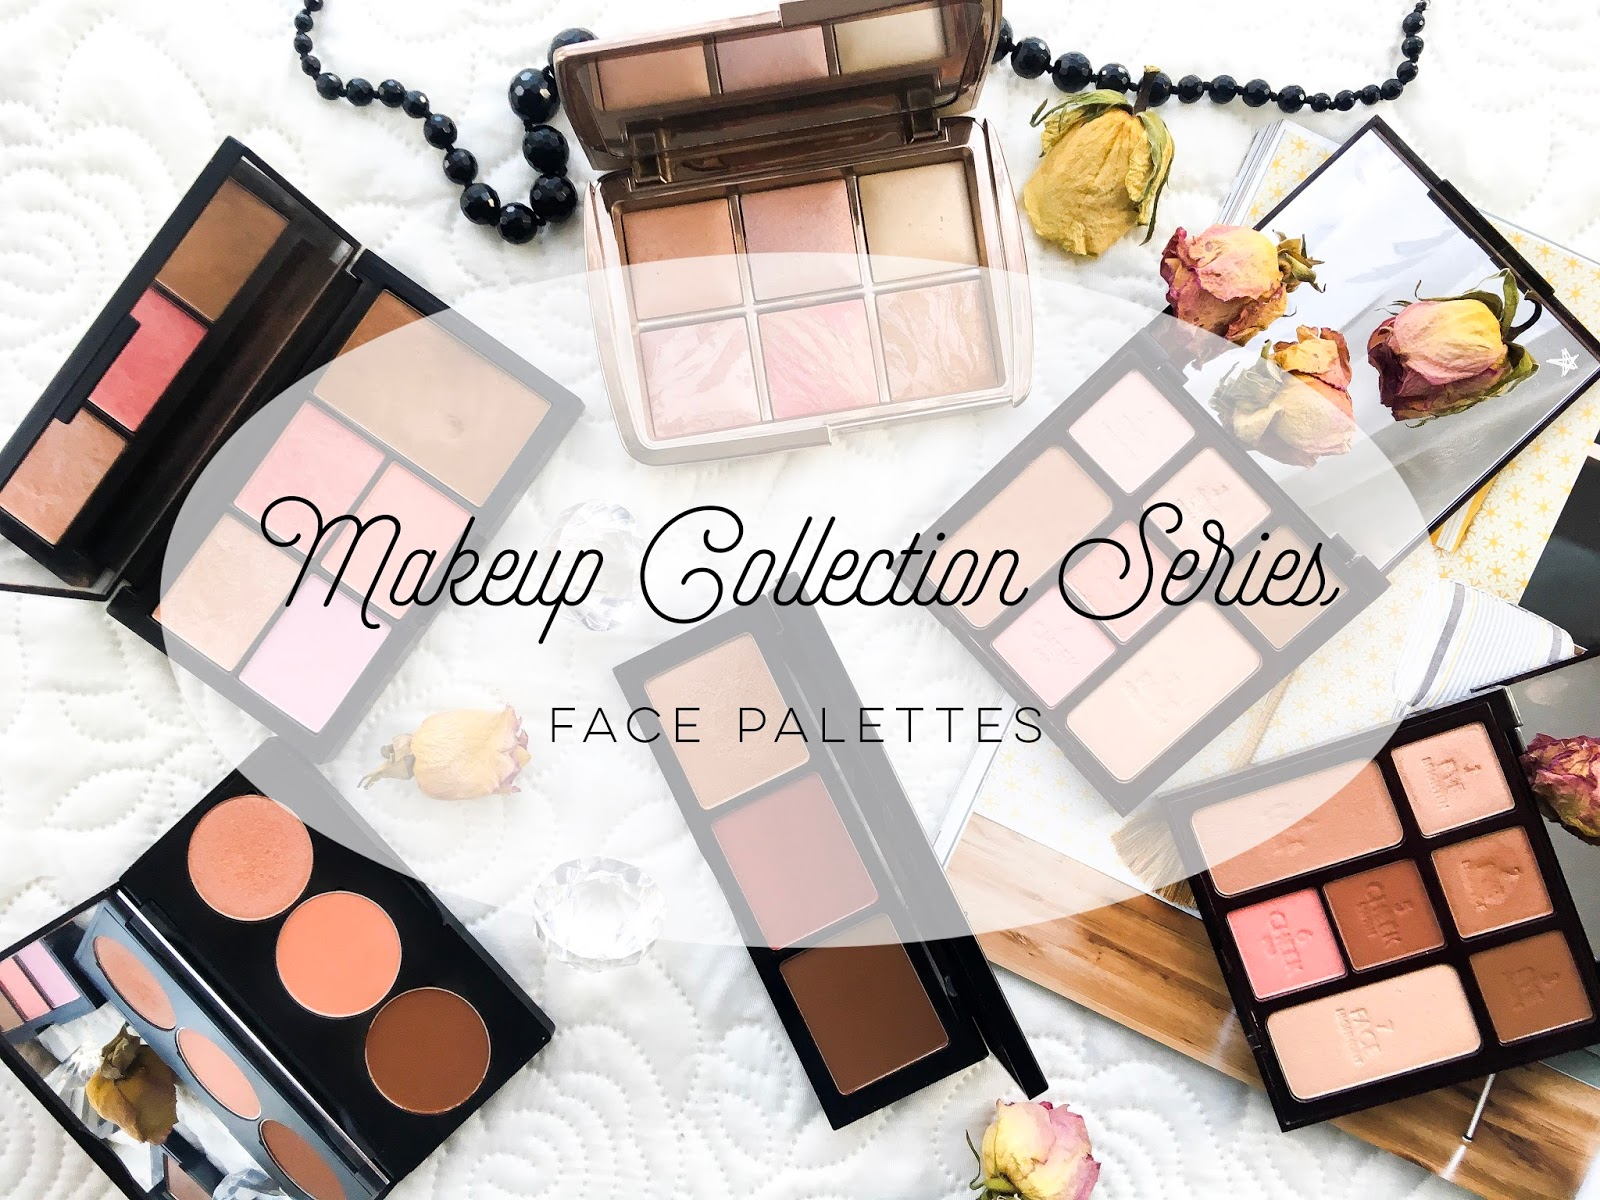 face palettes, makeup palettes, luxury makeup palette, makeup collection series, ummbaby makeup series